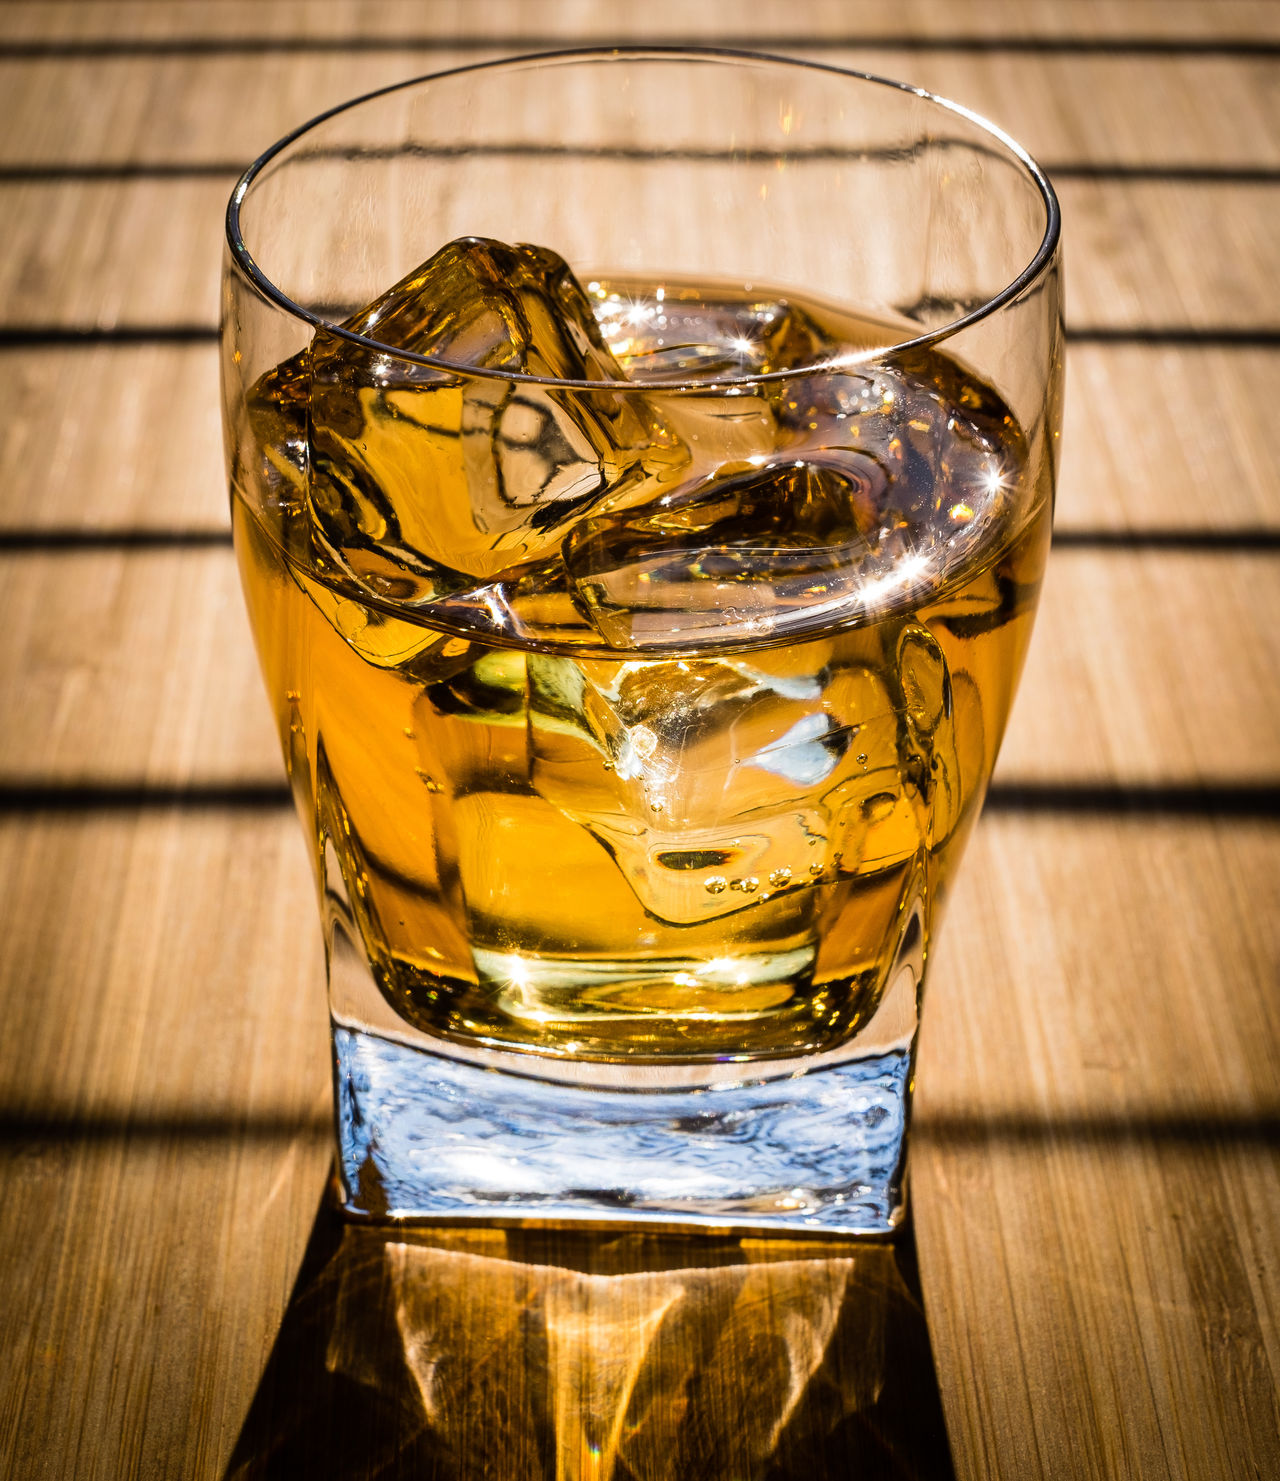 Apfelsaft mit Eis oder vielleicht doch Whisky? Alcohol Apfel Close-up Drinking Glass Eis Eiswürfel Lebensmittel Refreshment Saft, Sonne Sonneneinstrahlung Sonnenuntergang Still Life Table Whisky Whisky Glass Whisky Tasting Wood - Material